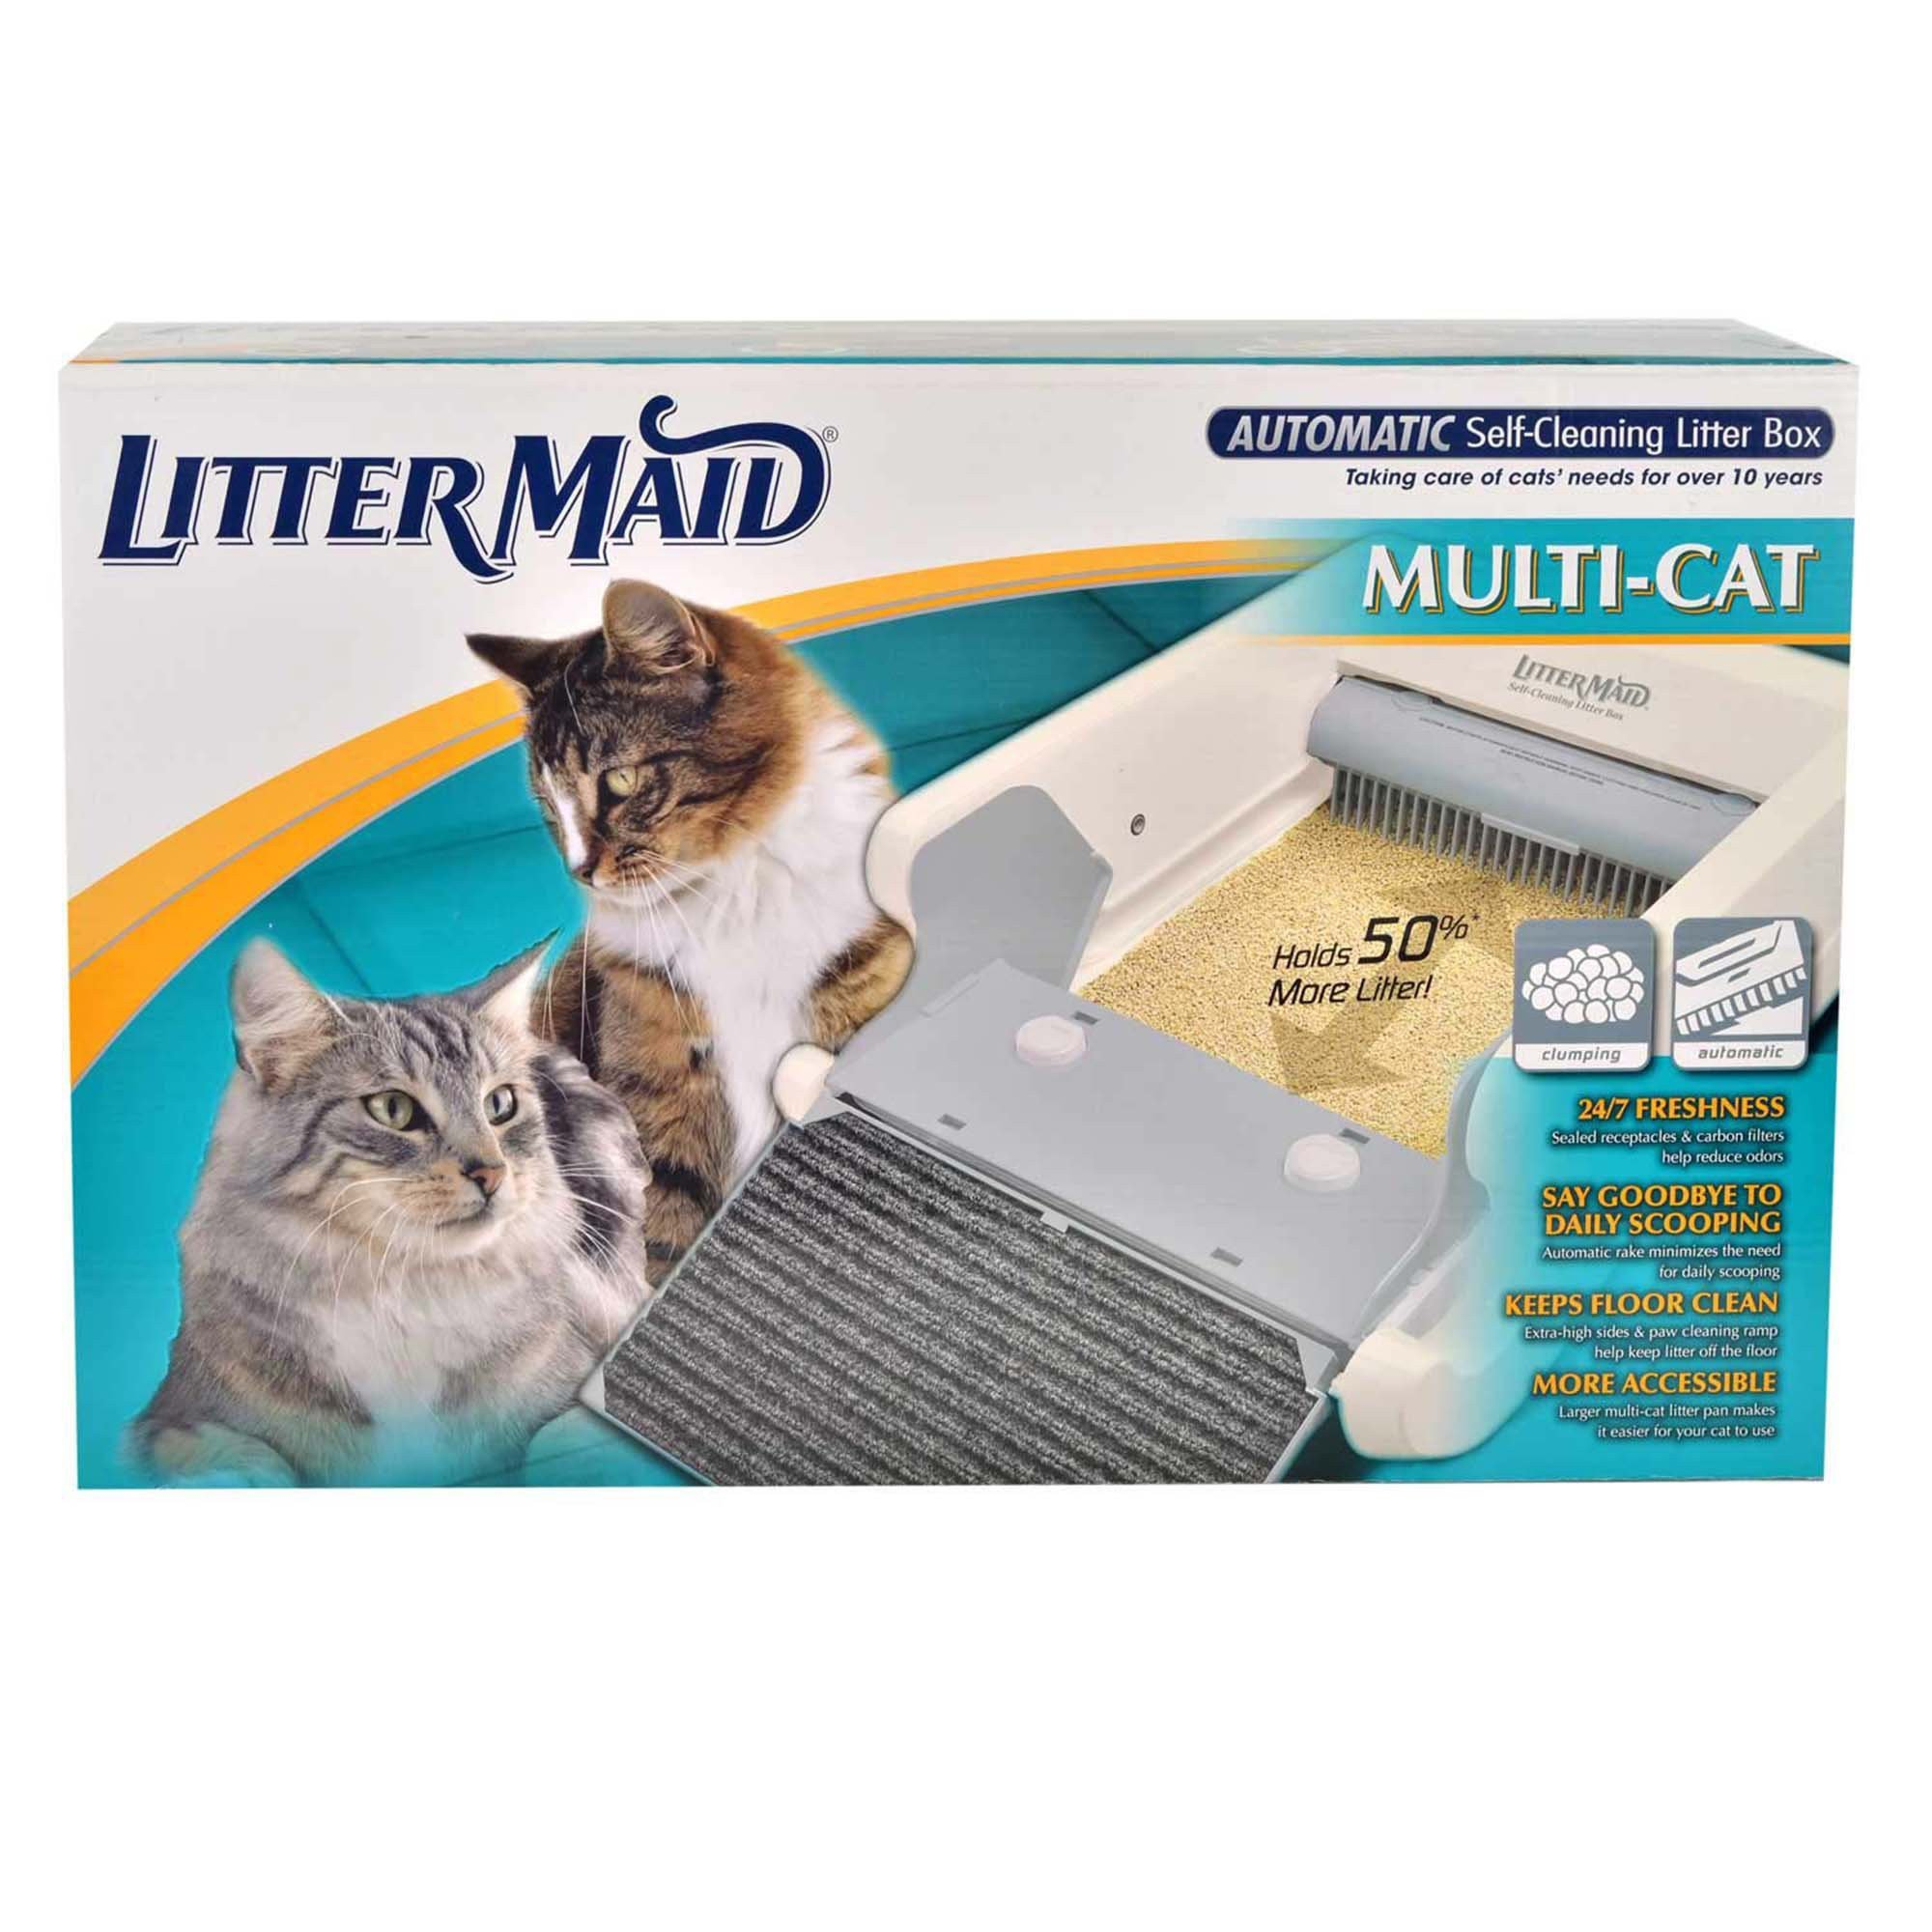 Littermaid LM-86579 Multi-Cat Automatic Self-Cleaning Lit...